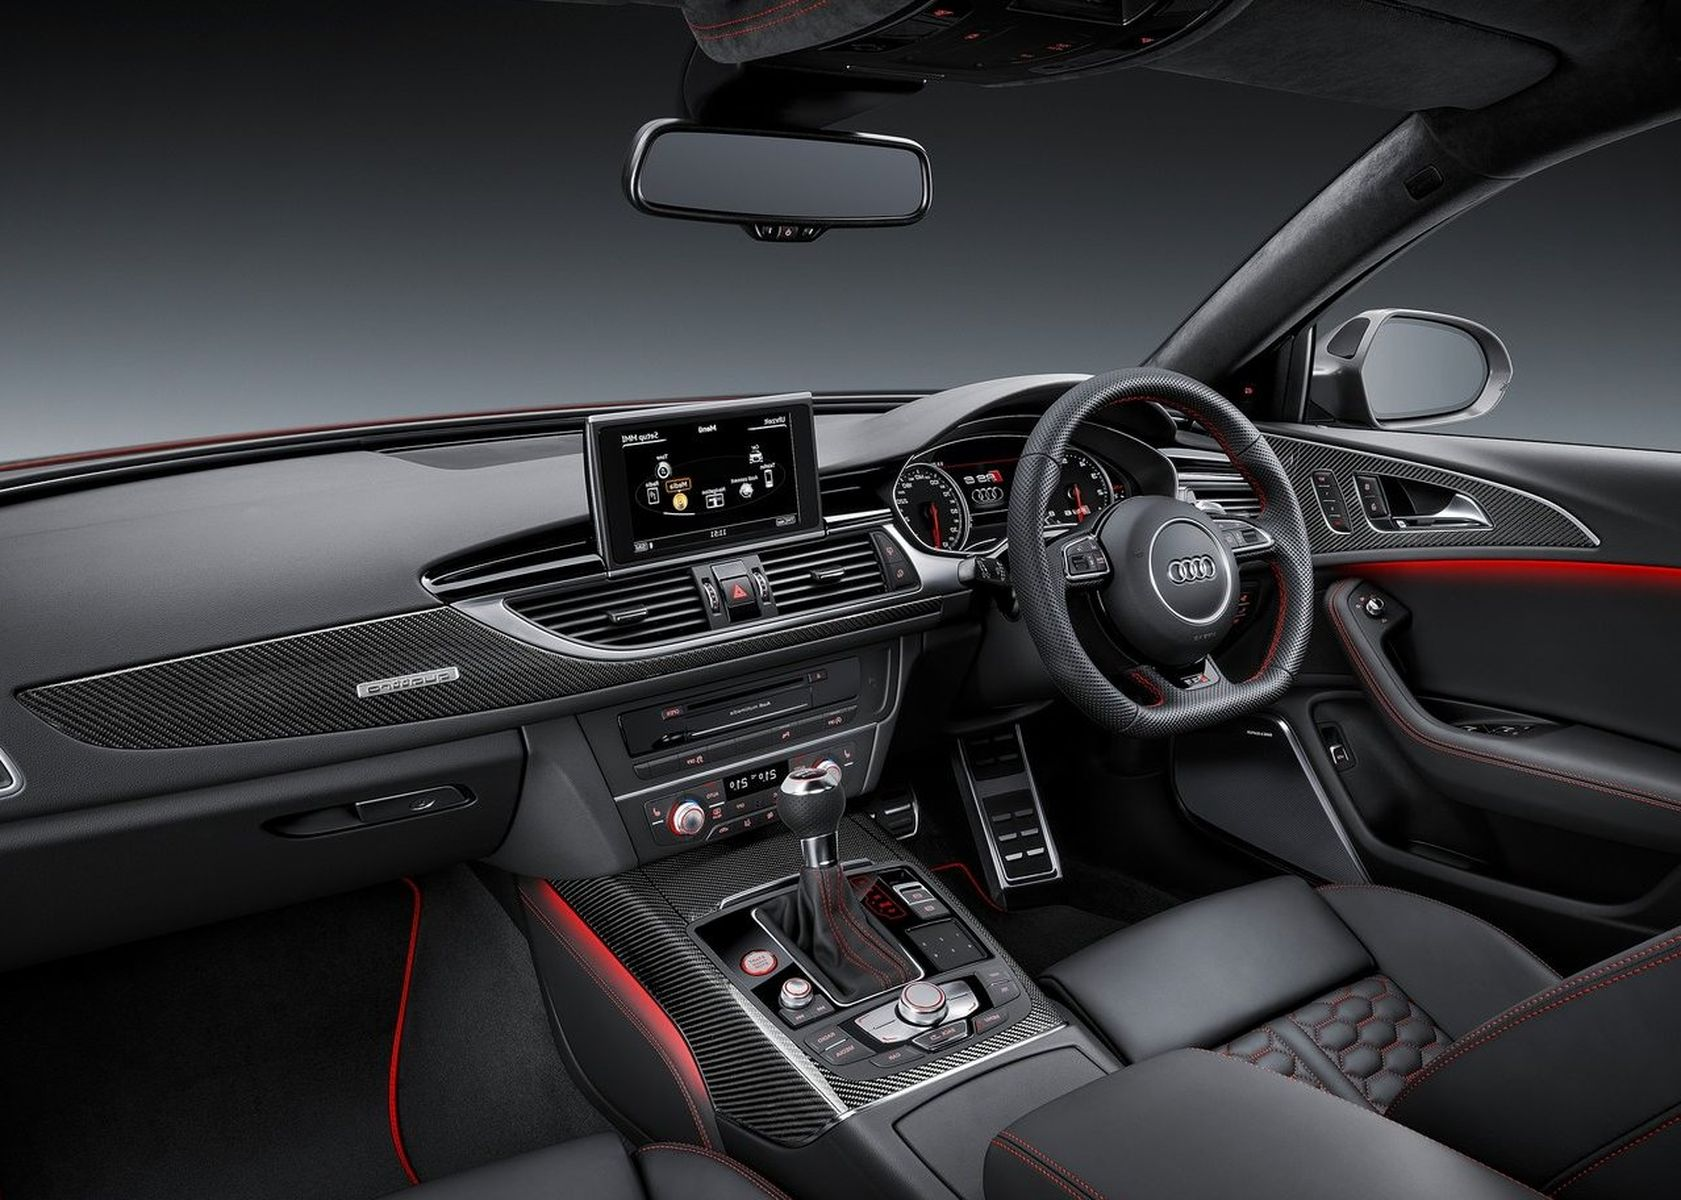 2018 audi rs6 avant interior pictures new suv price new suv price. Black Bedroom Furniture Sets. Home Design Ideas